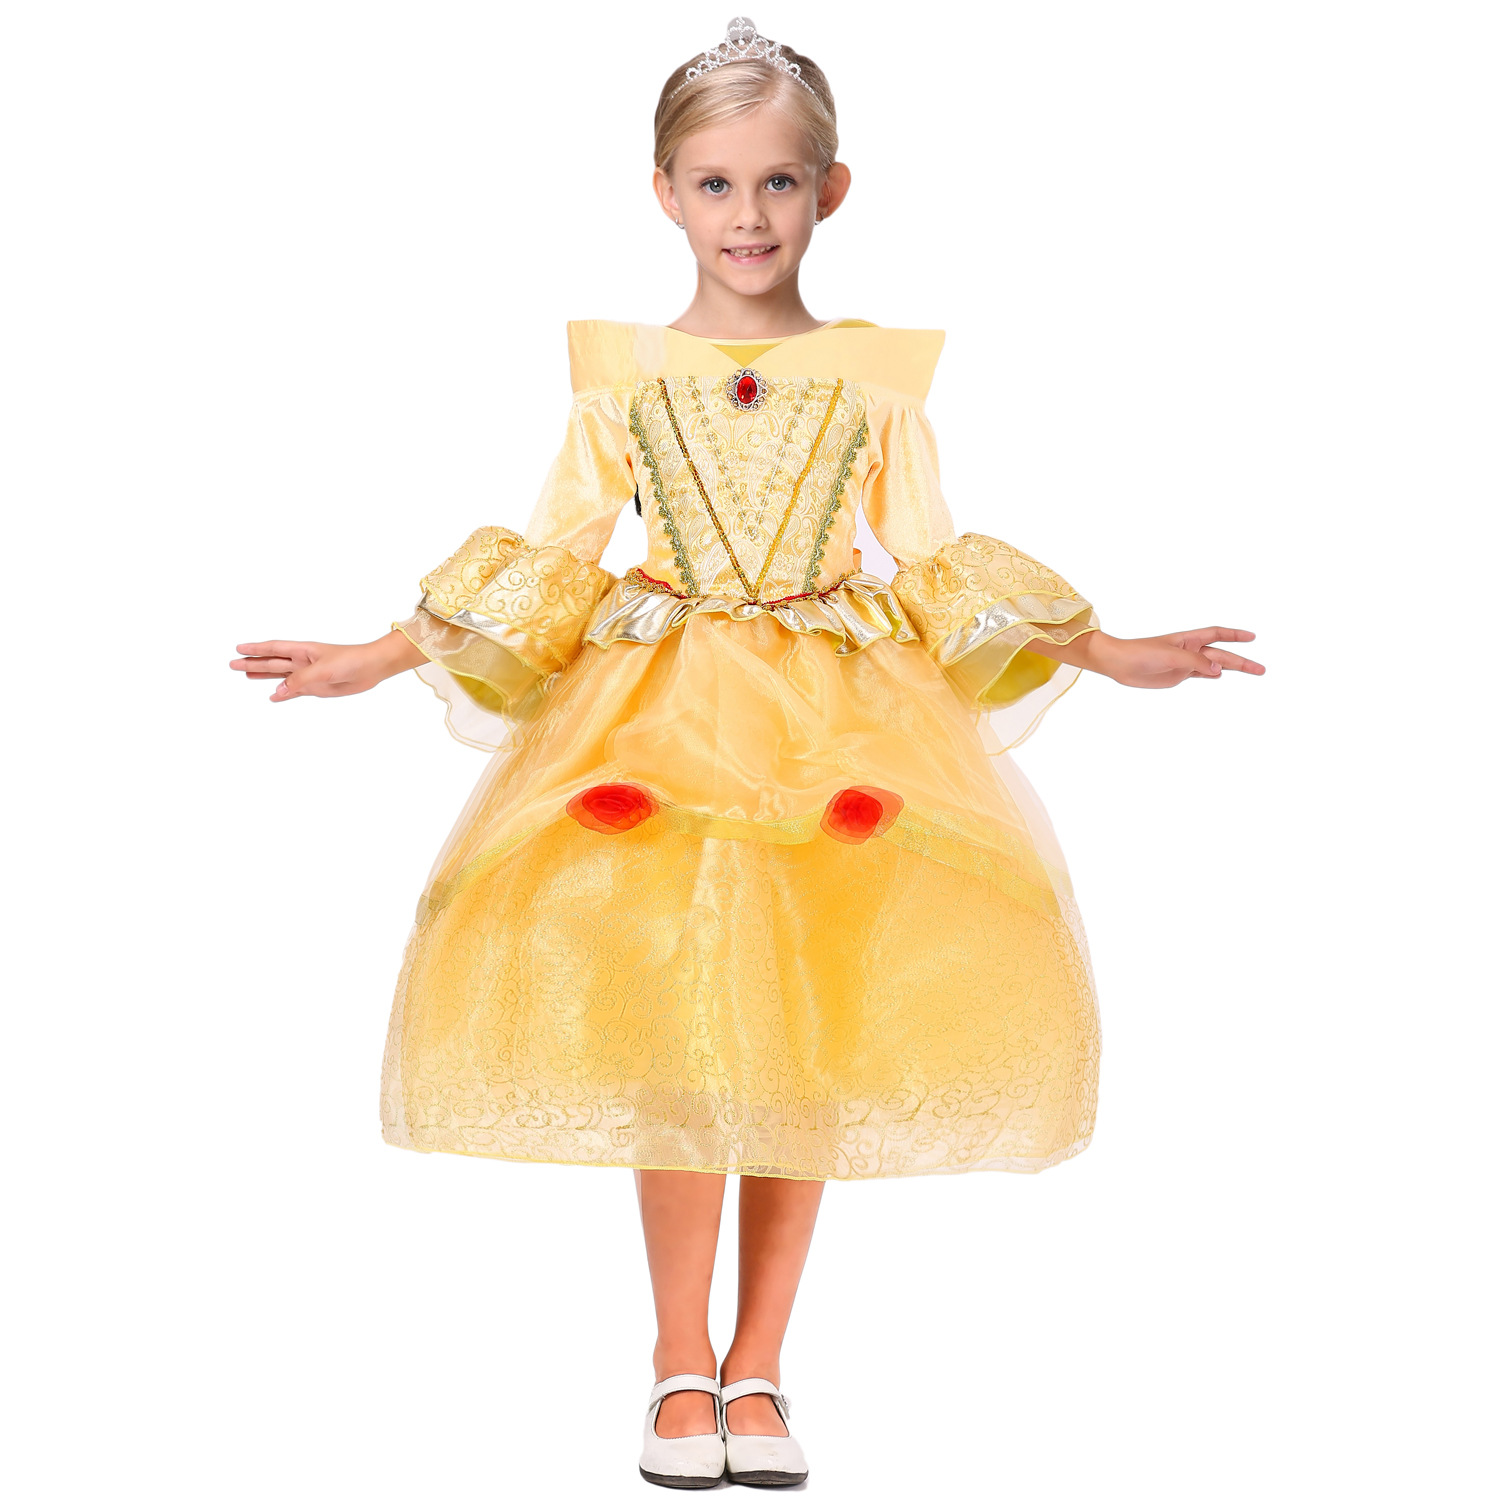 2019 Kids Carnival Clothing Belle Princess Cosplay Dress Girls Halloween Dresses For Beauty And The Beast Children Party Costume